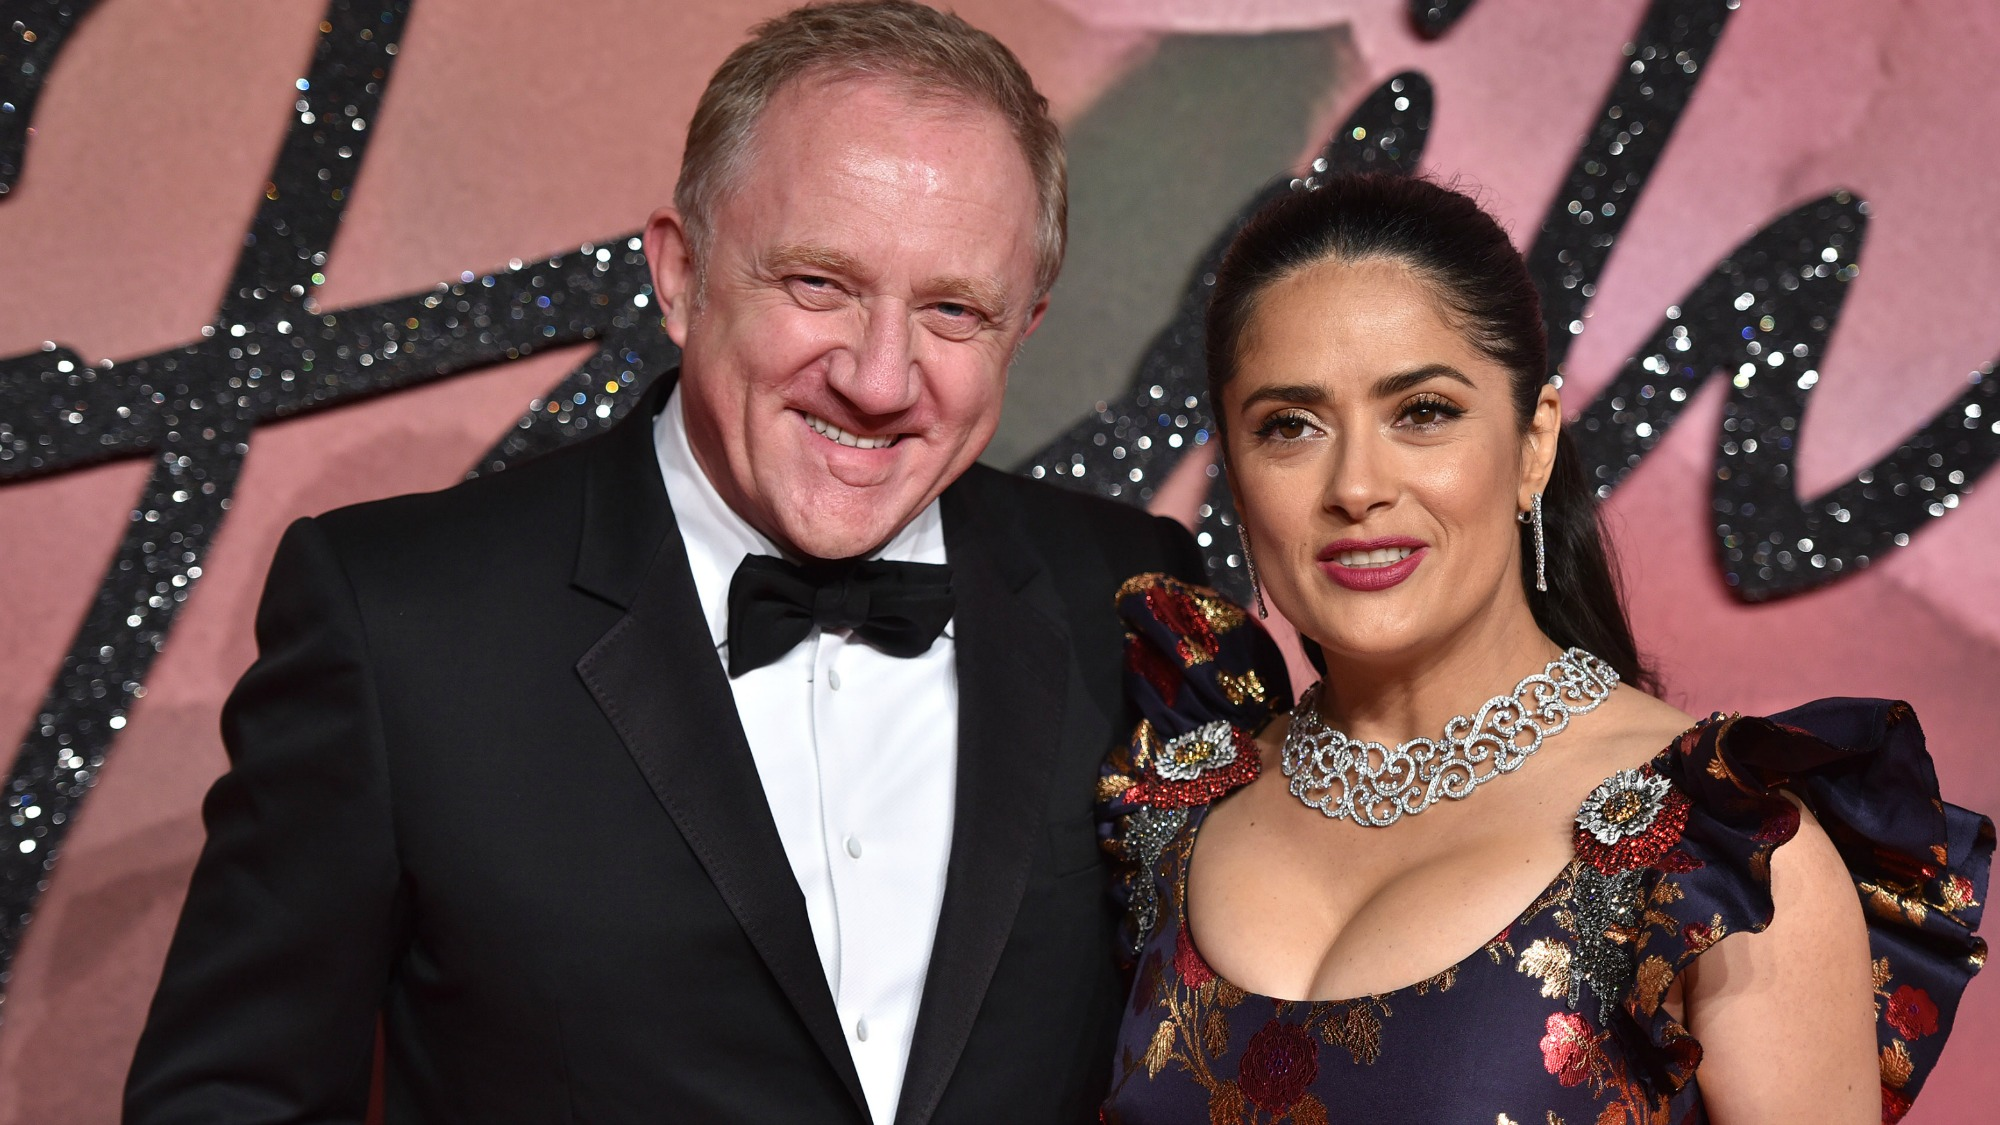 10 Things You Didn't Know About Salma Hayek's Billionaire Husband François-Henri Pinault